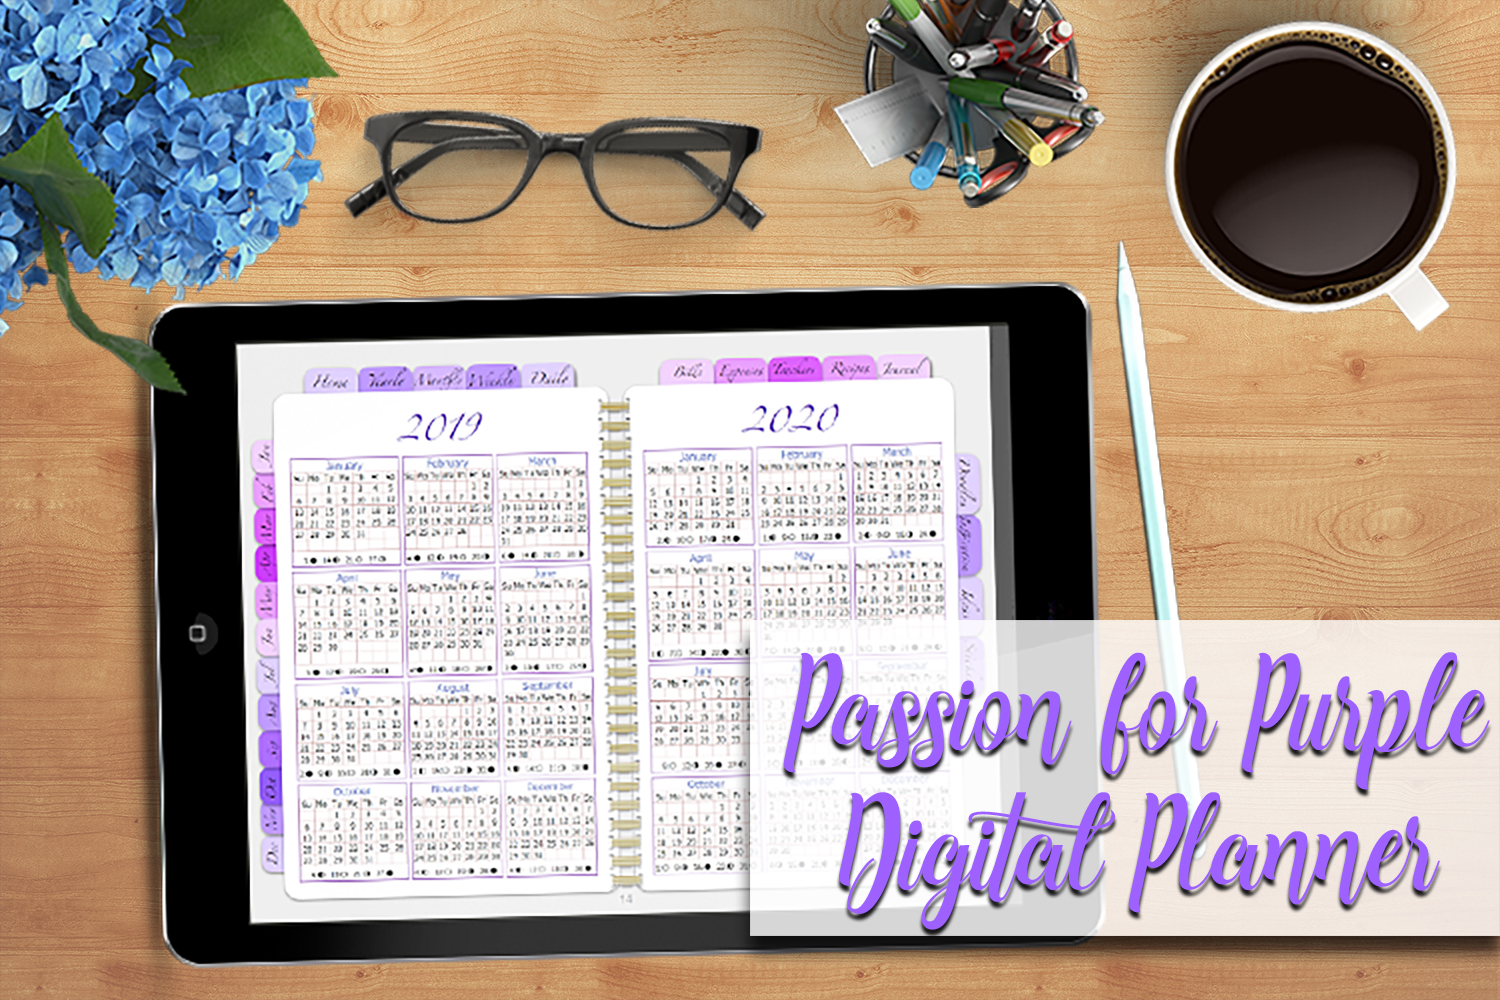 Digital Planner A Passion For Purple example image 1